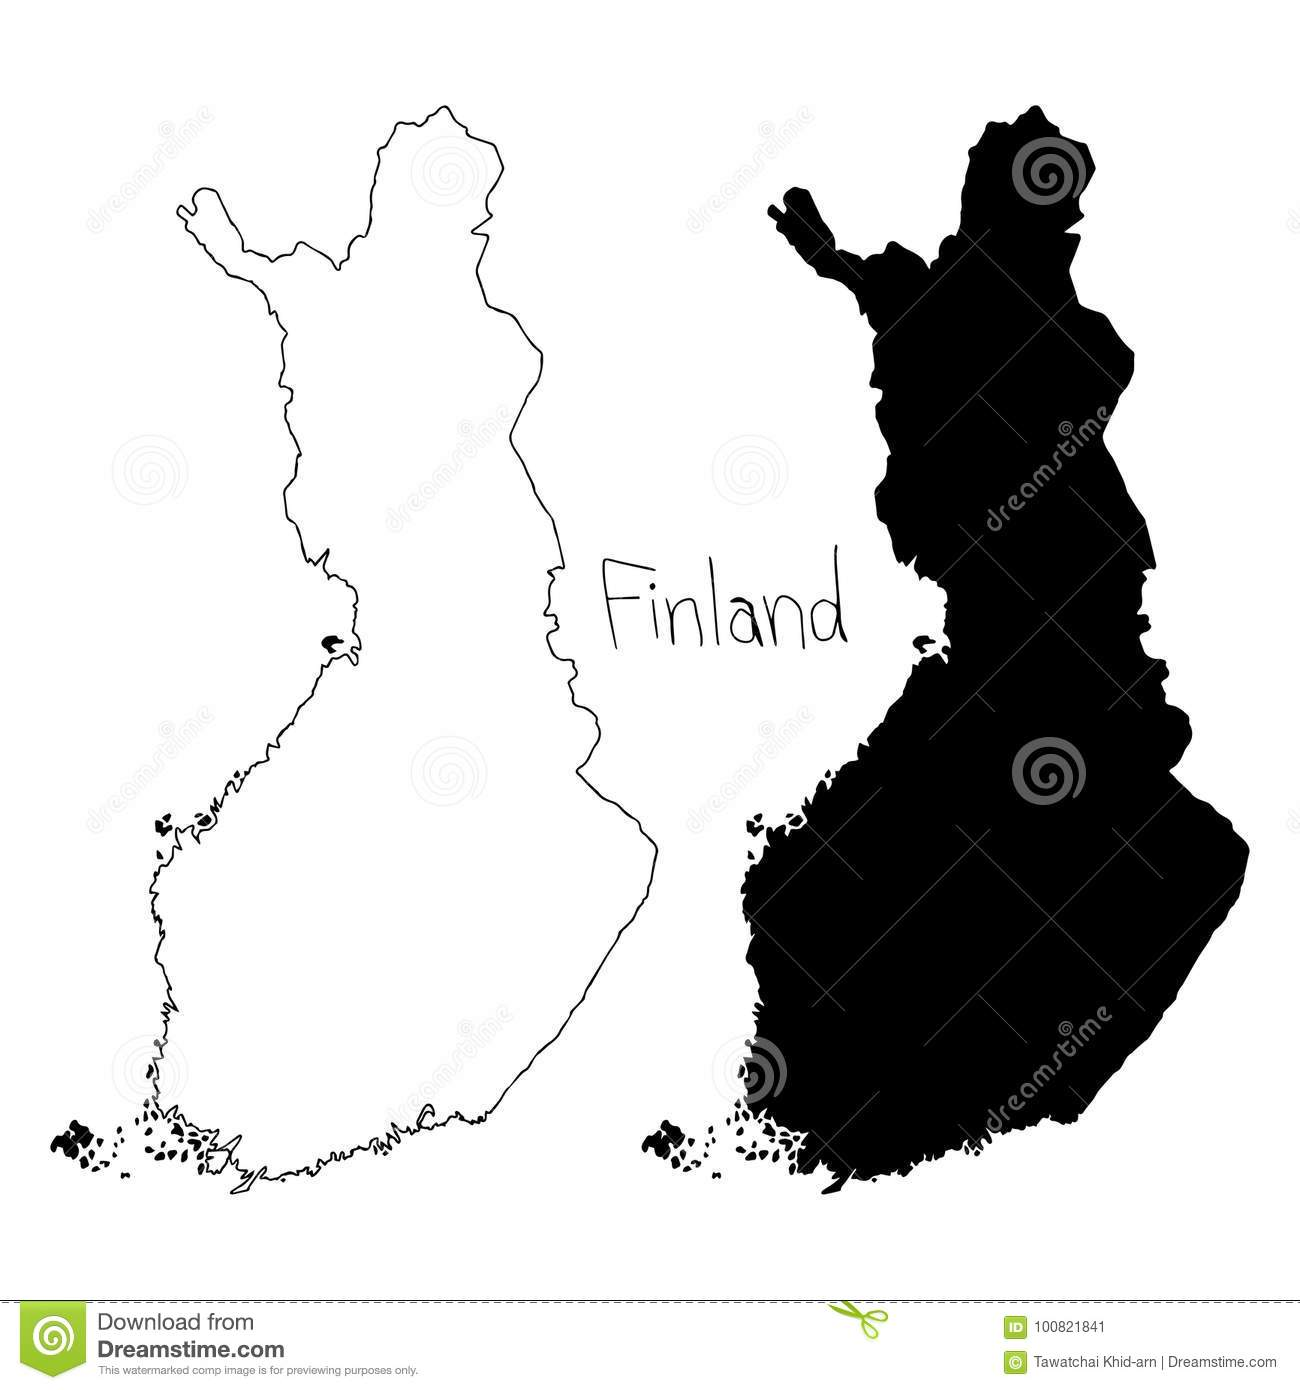 Outline And Silhouette Map Of Finland - Vector Illustration ...